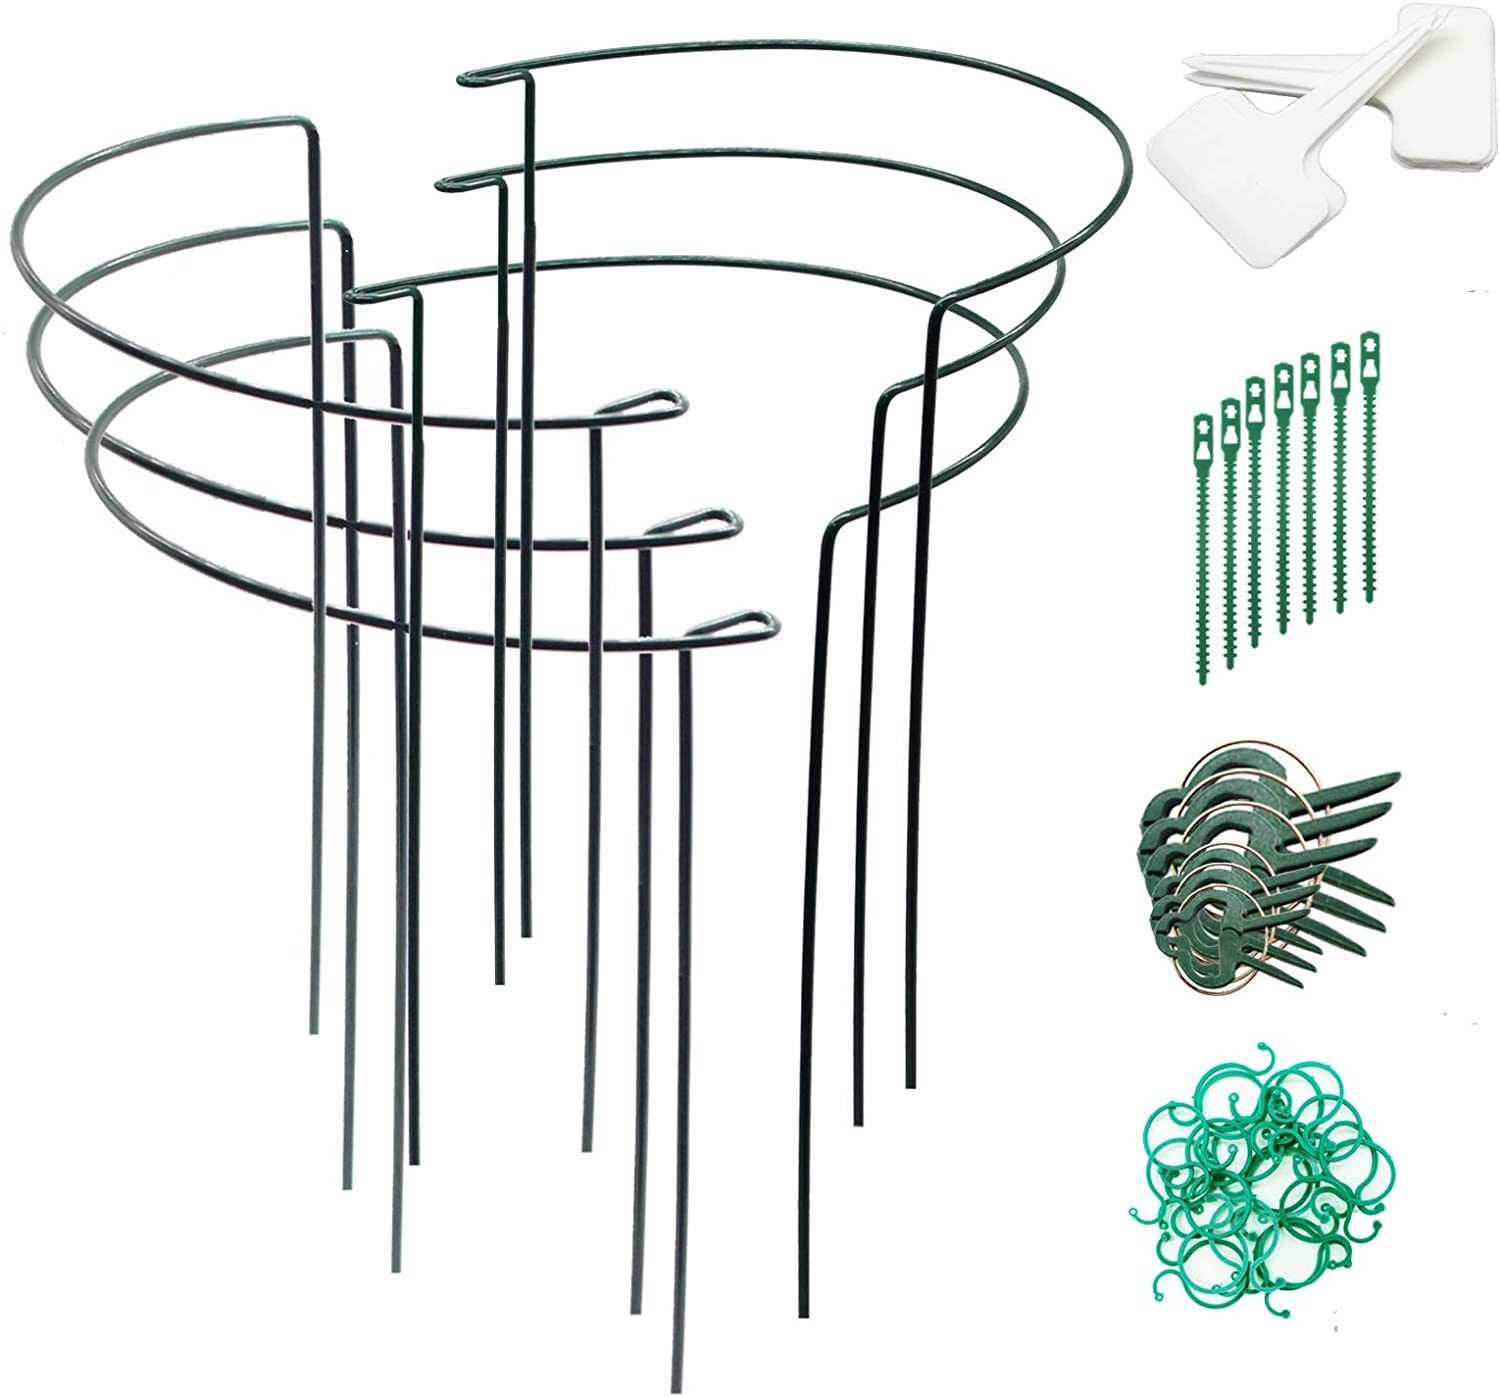 FARAER Plant Support Stakes, 6Pack Versatile Half-Round Plant Supports Prevent Flopping Flowers, Linking Stakes Garden Border Supports Plant Cages with Plant Labels Plant Clips Wrap Ties Twist Clips